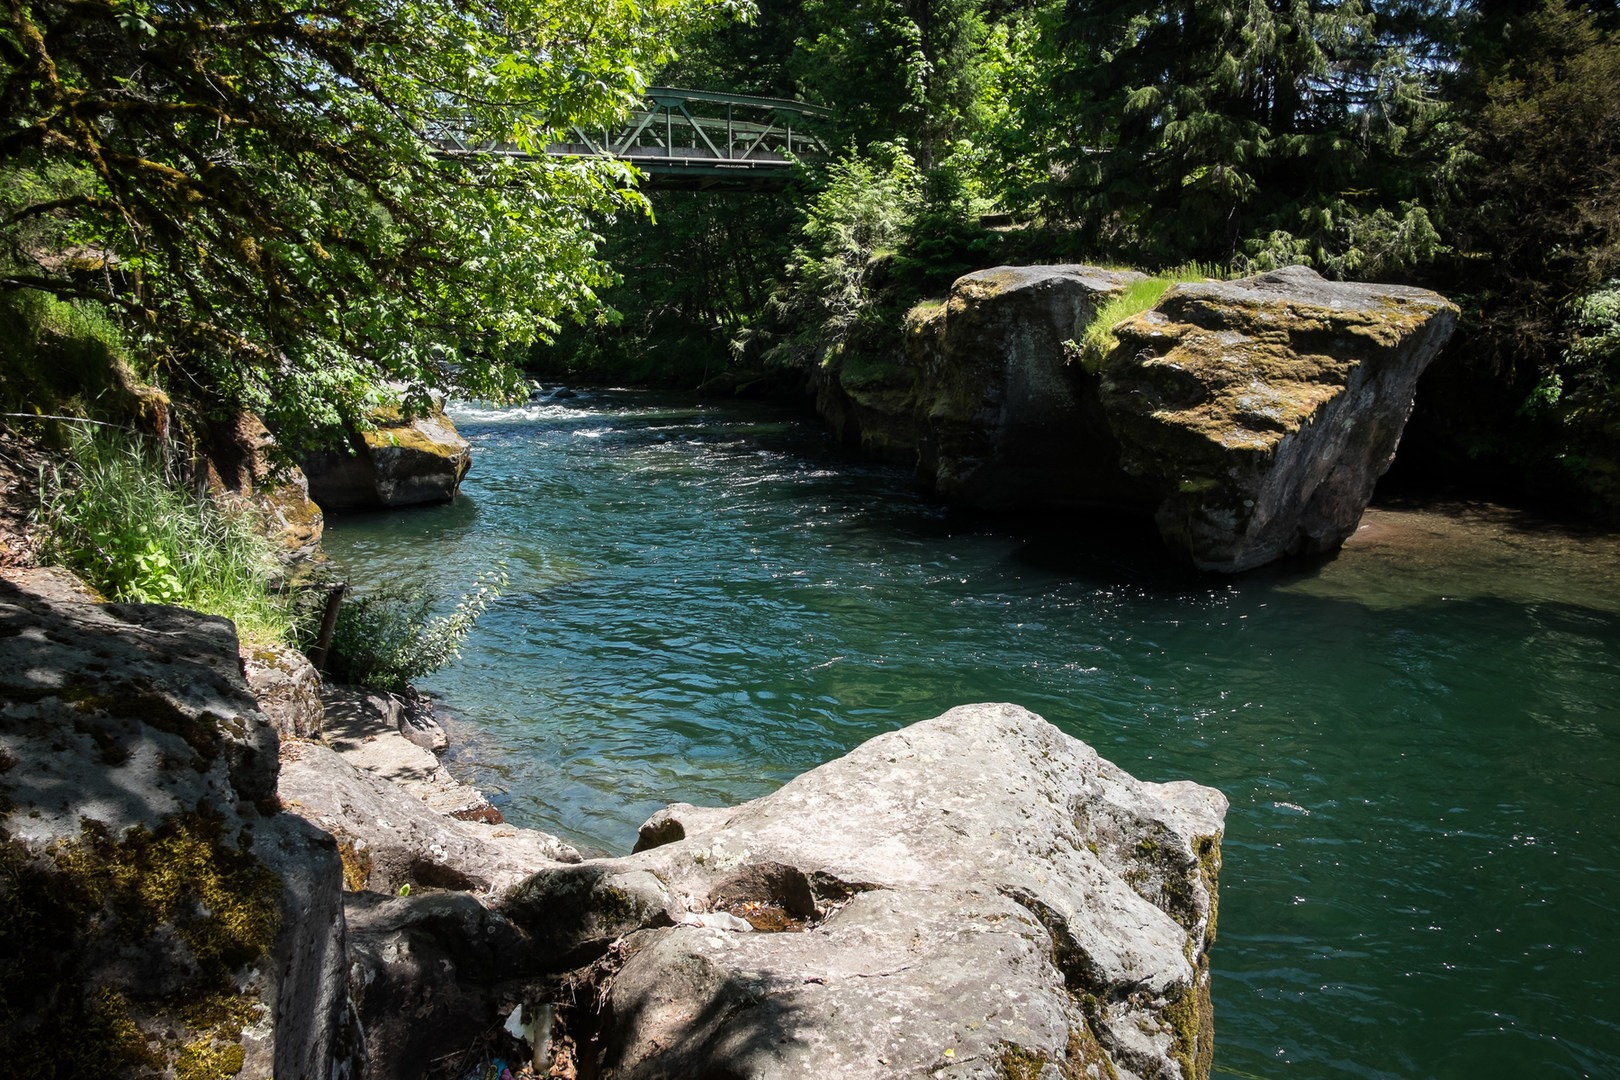 Where To Make Key Copies Near Me >> Oregon's 30 Best Swimming Holes - Outdoor Project